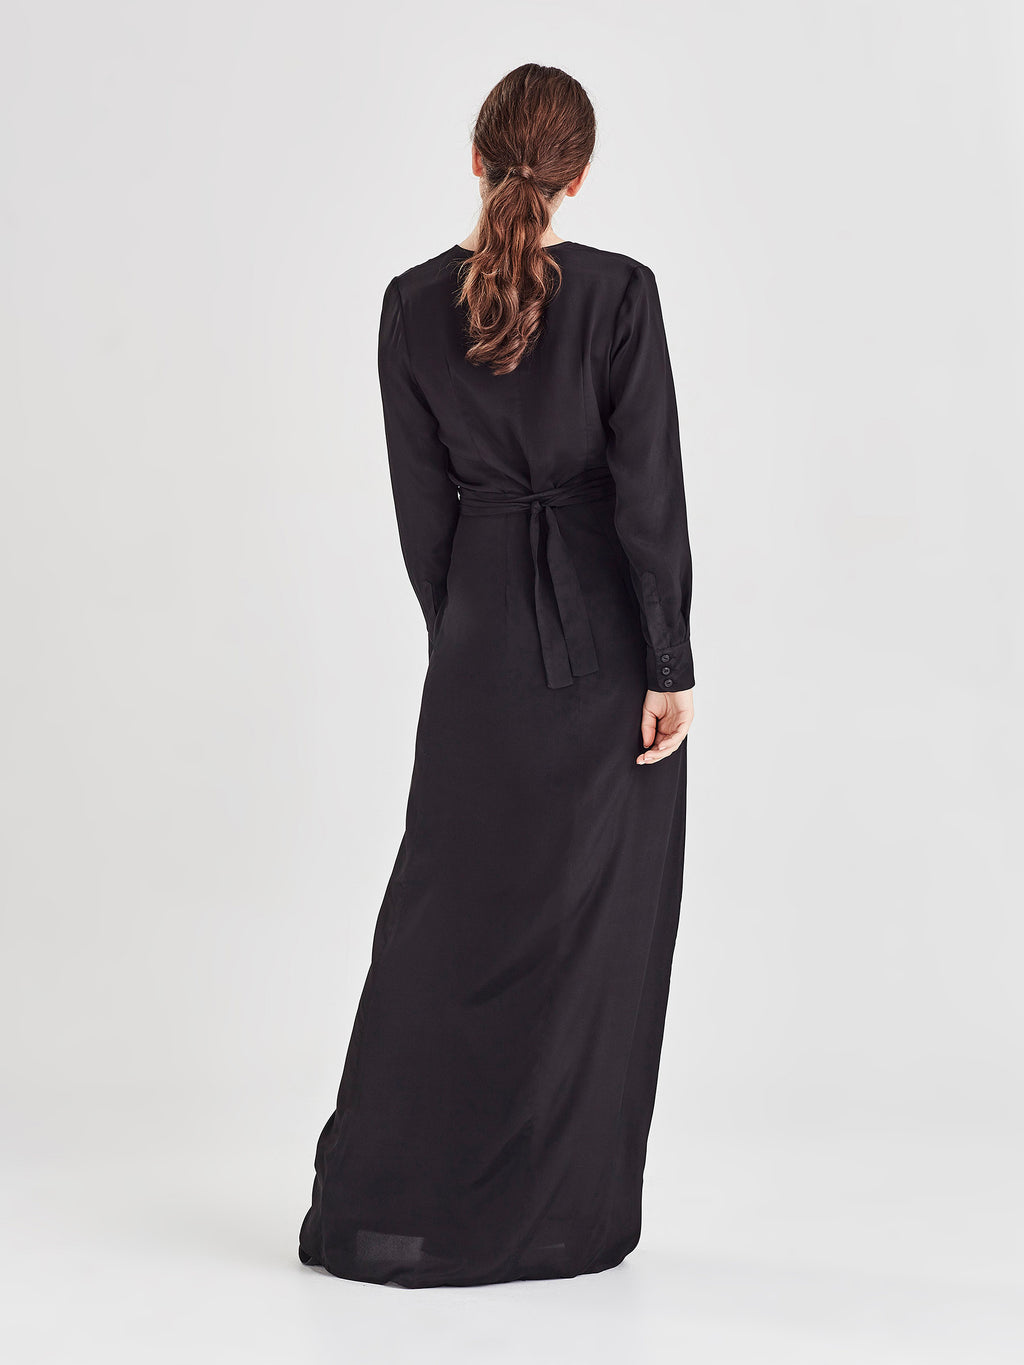 Danielle Dress (Viscose Silk) Black